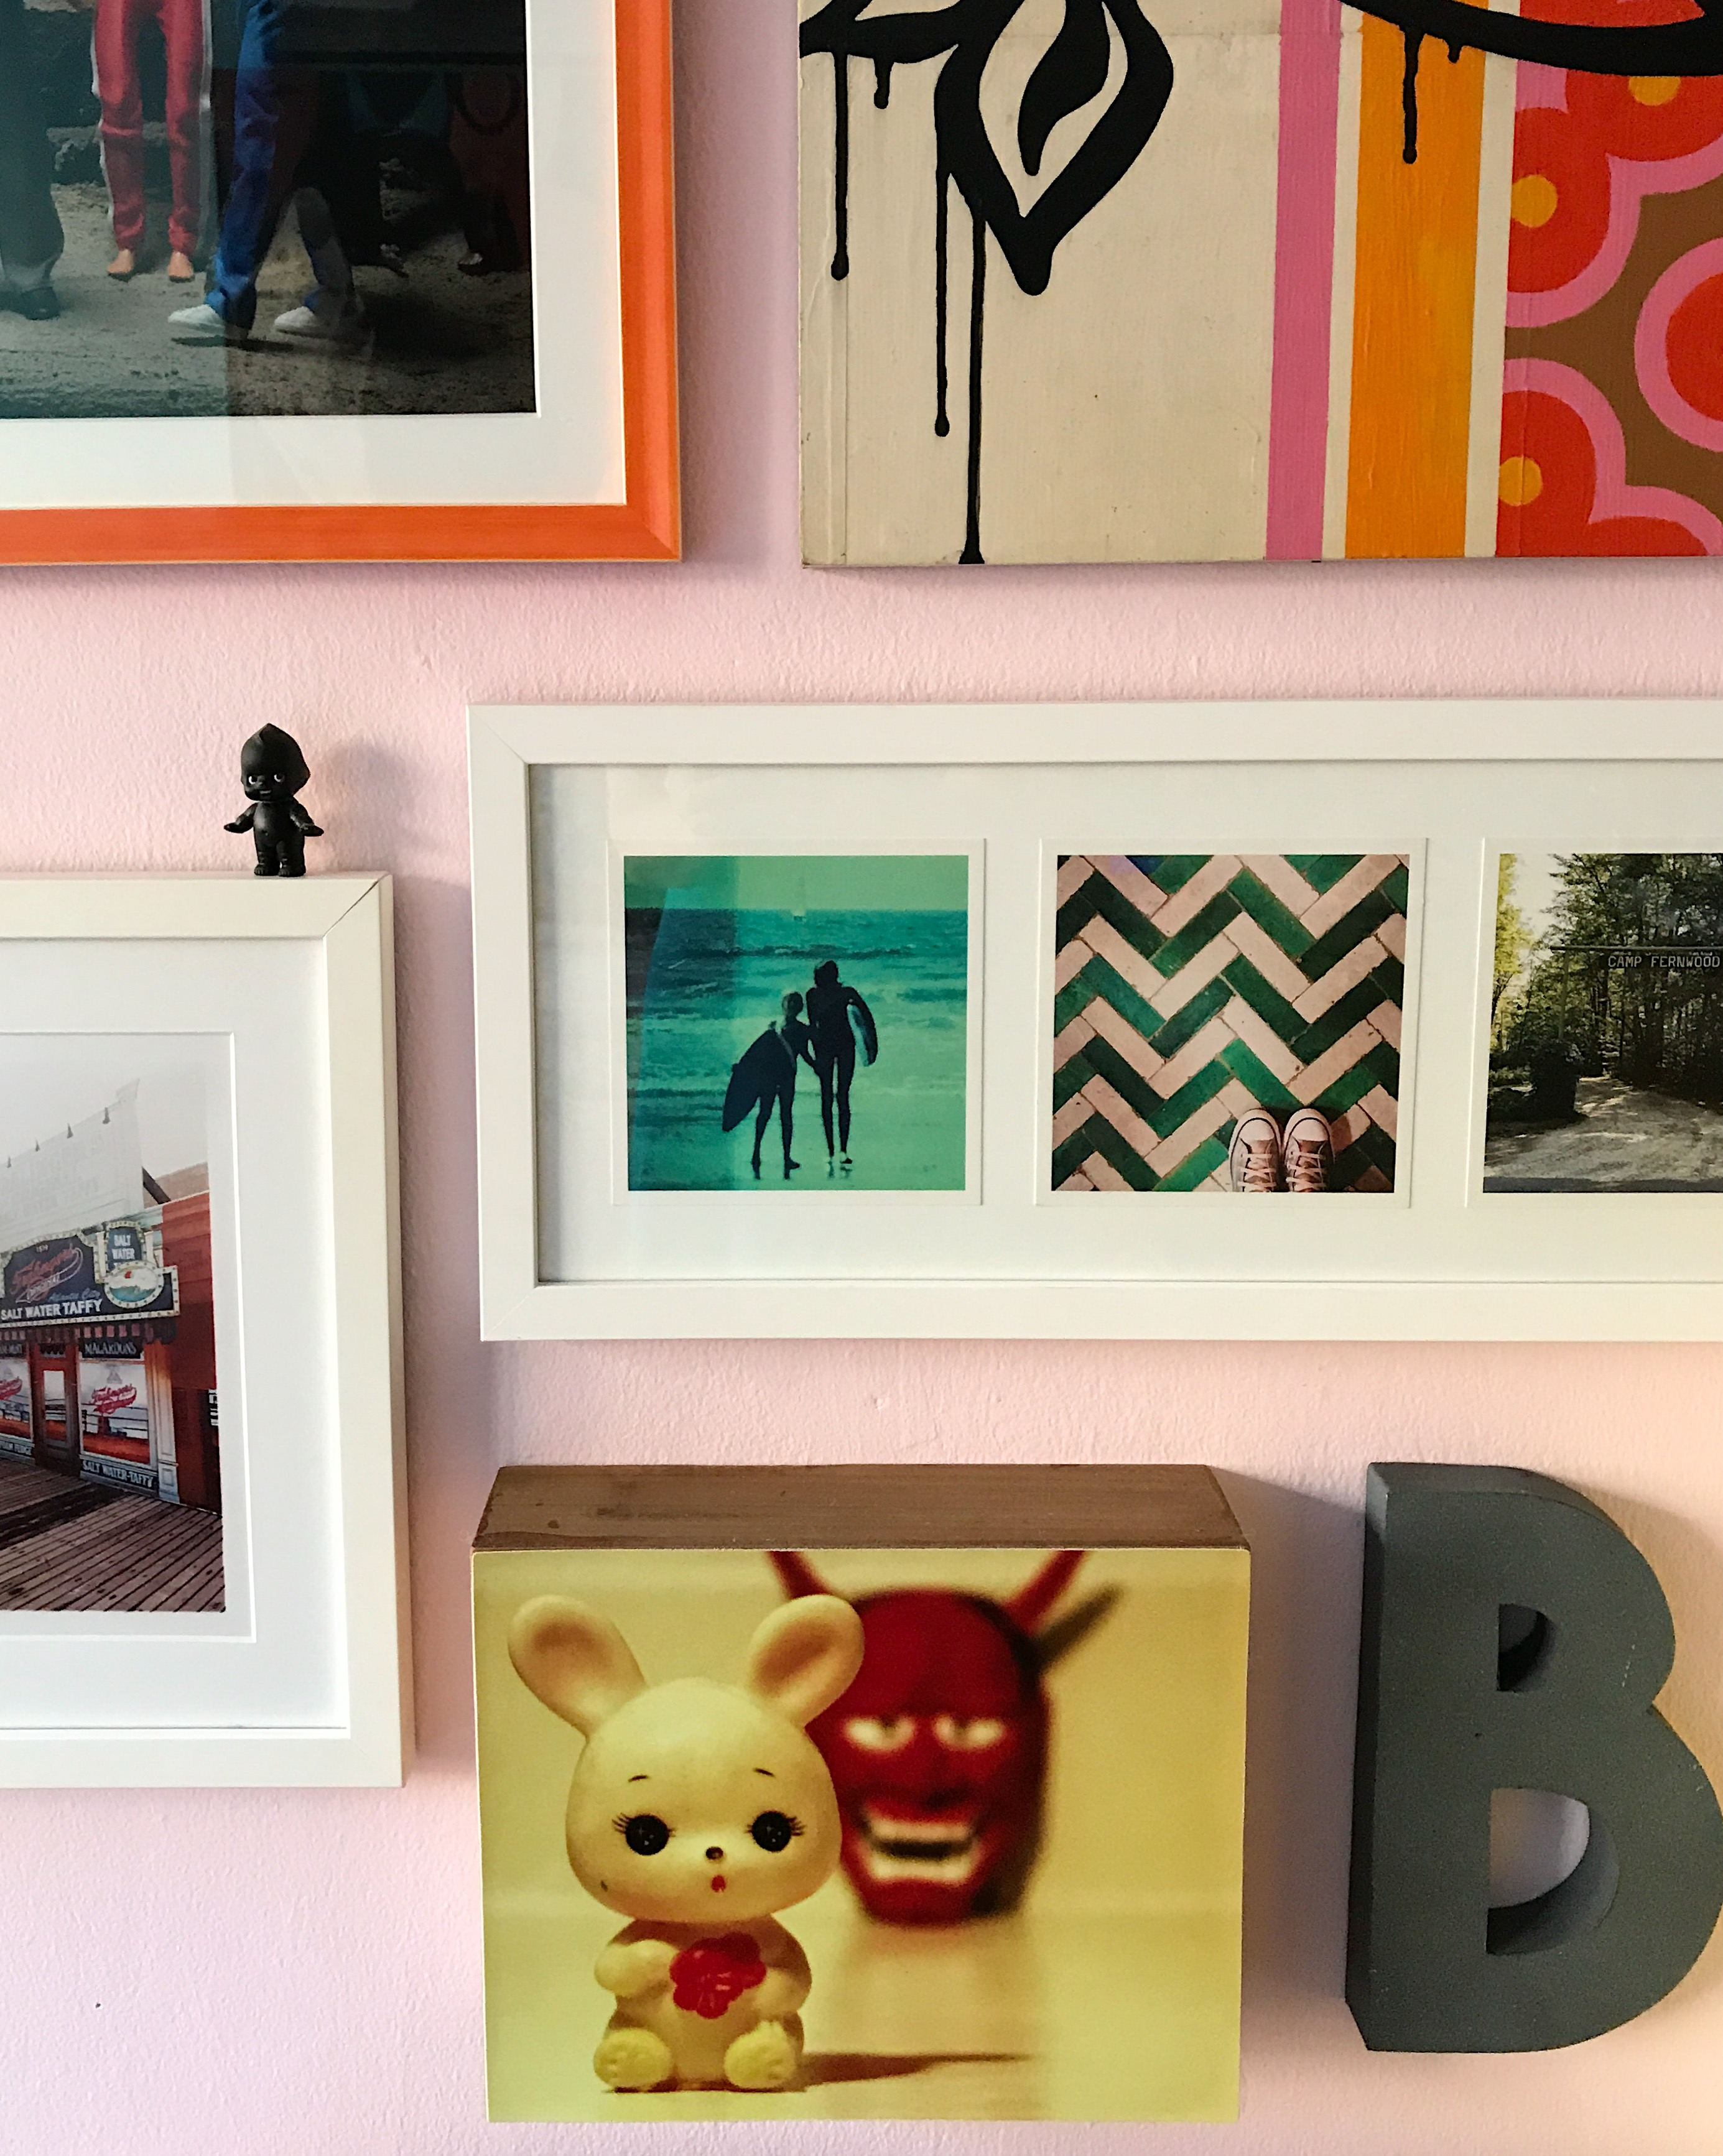 Art framing can help take your artwork presentation to the next level